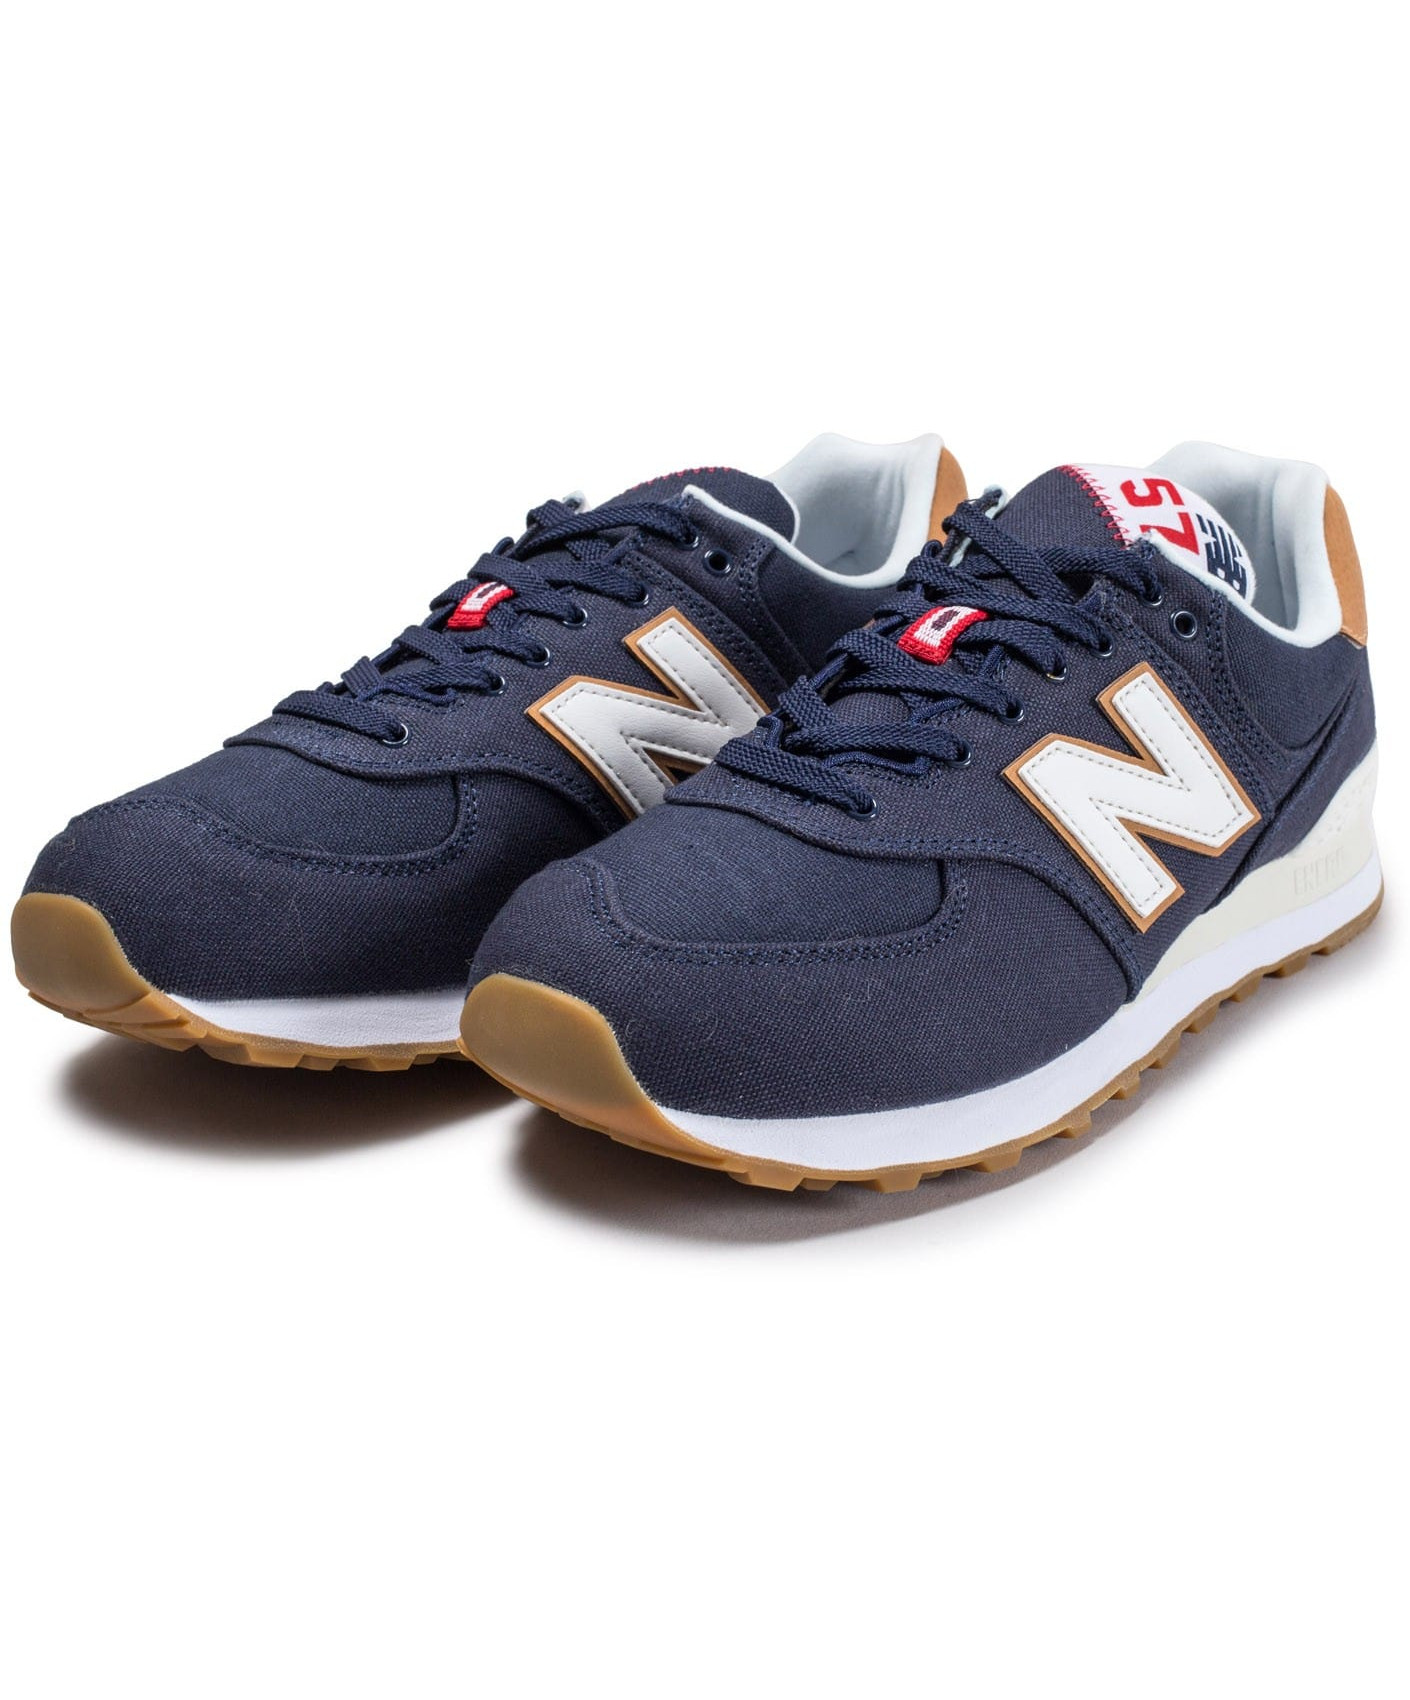 New Balance 574 Canvas Scarpe Sneakers Ginnastica Tennis Lifestyle Blu